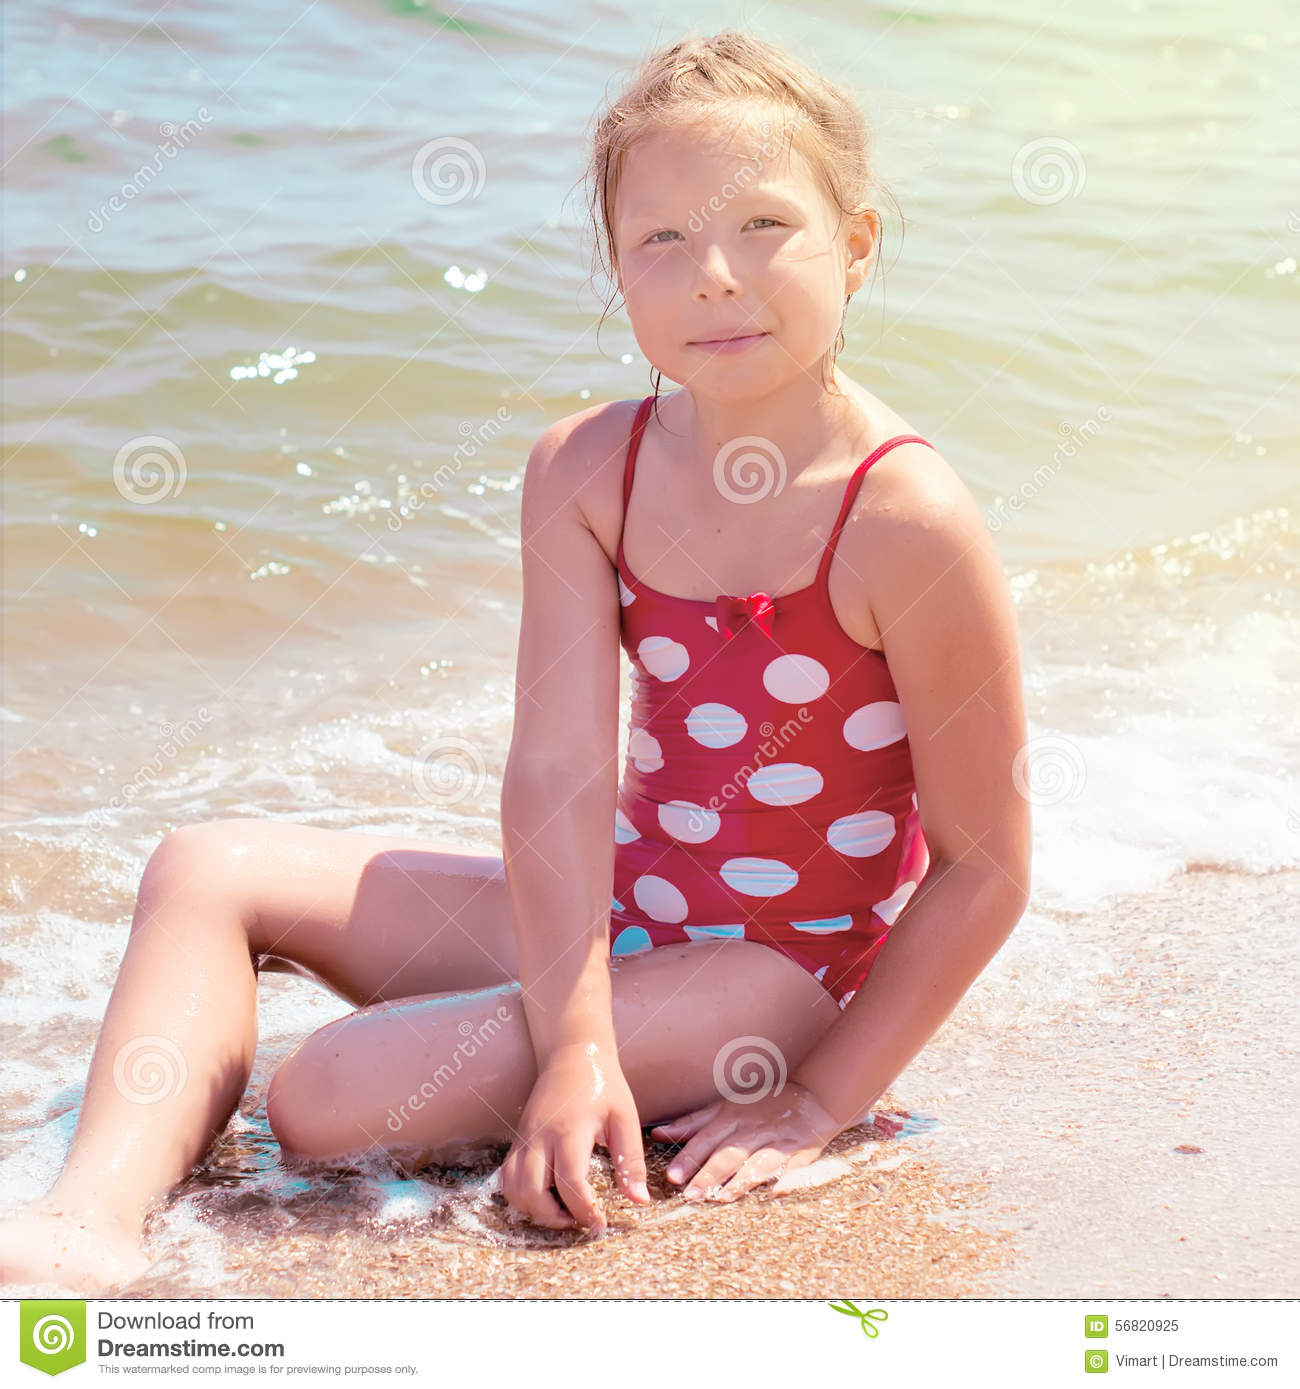 Adorable Little Girl Playing With Beach Toys During: Happy Girl At Sea Beach Stock Image. Image Of Beach